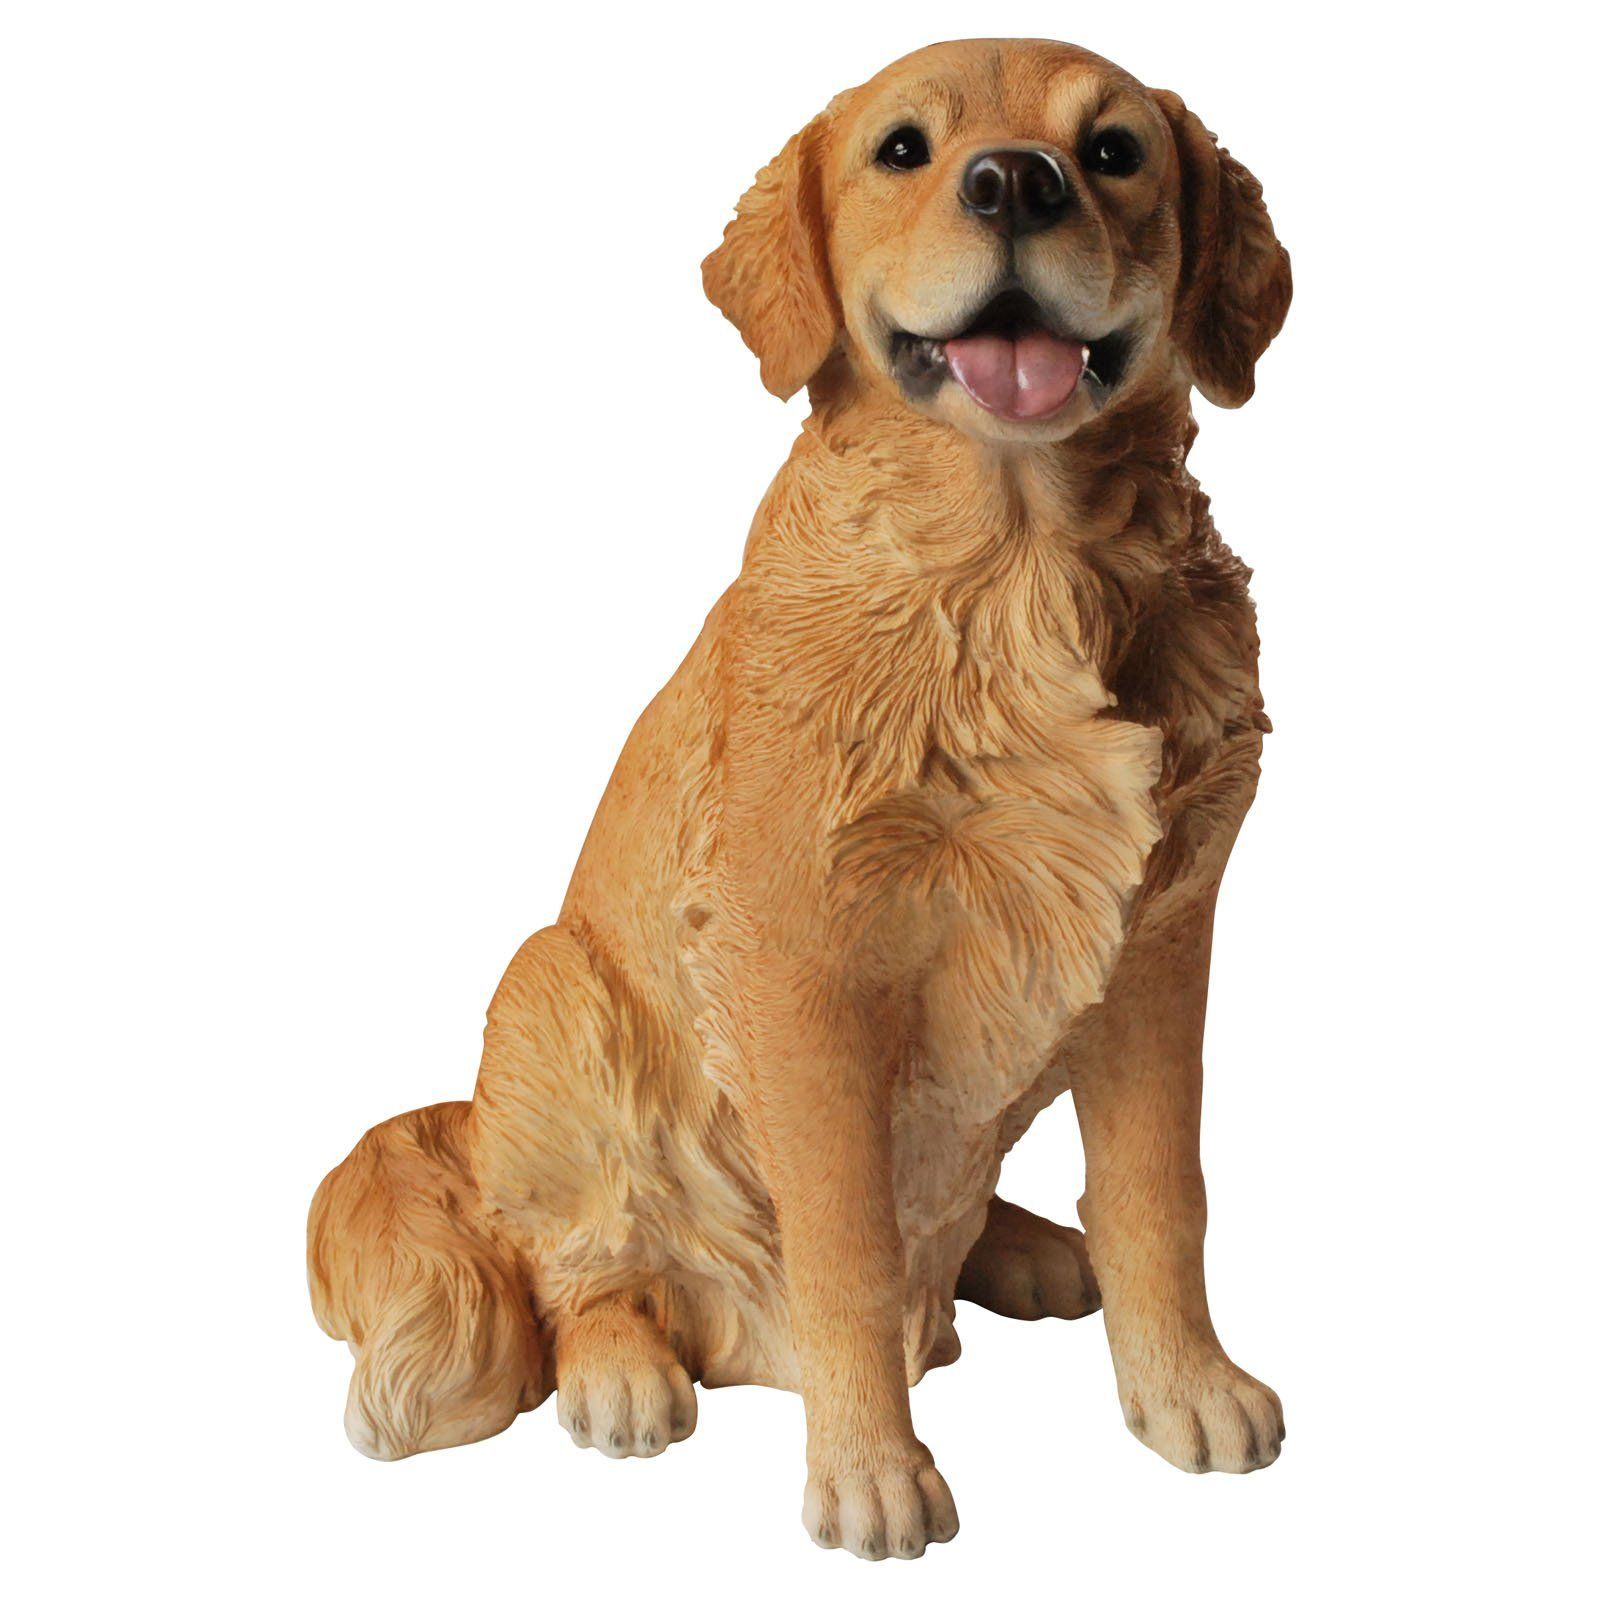 Have To Have It Vivid Arts Sitting Golden Retriever Statue